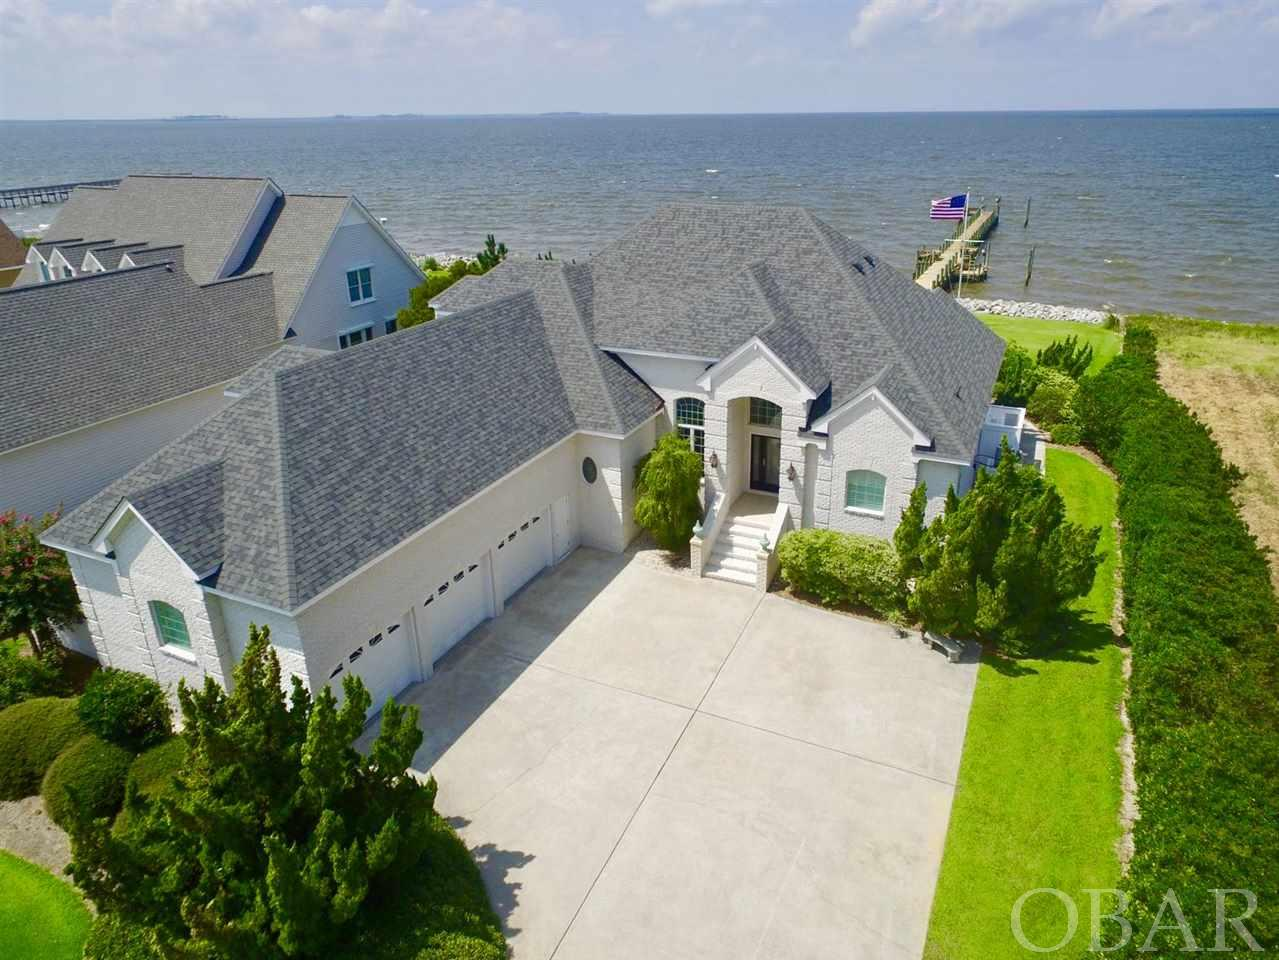 152 Fort Hugar Way, Manteo, NC 27954, 4 Bedrooms Bedrooms, ,4 BathroomsBathrooms,Residential,For sale,Fort Hugar Way,102004